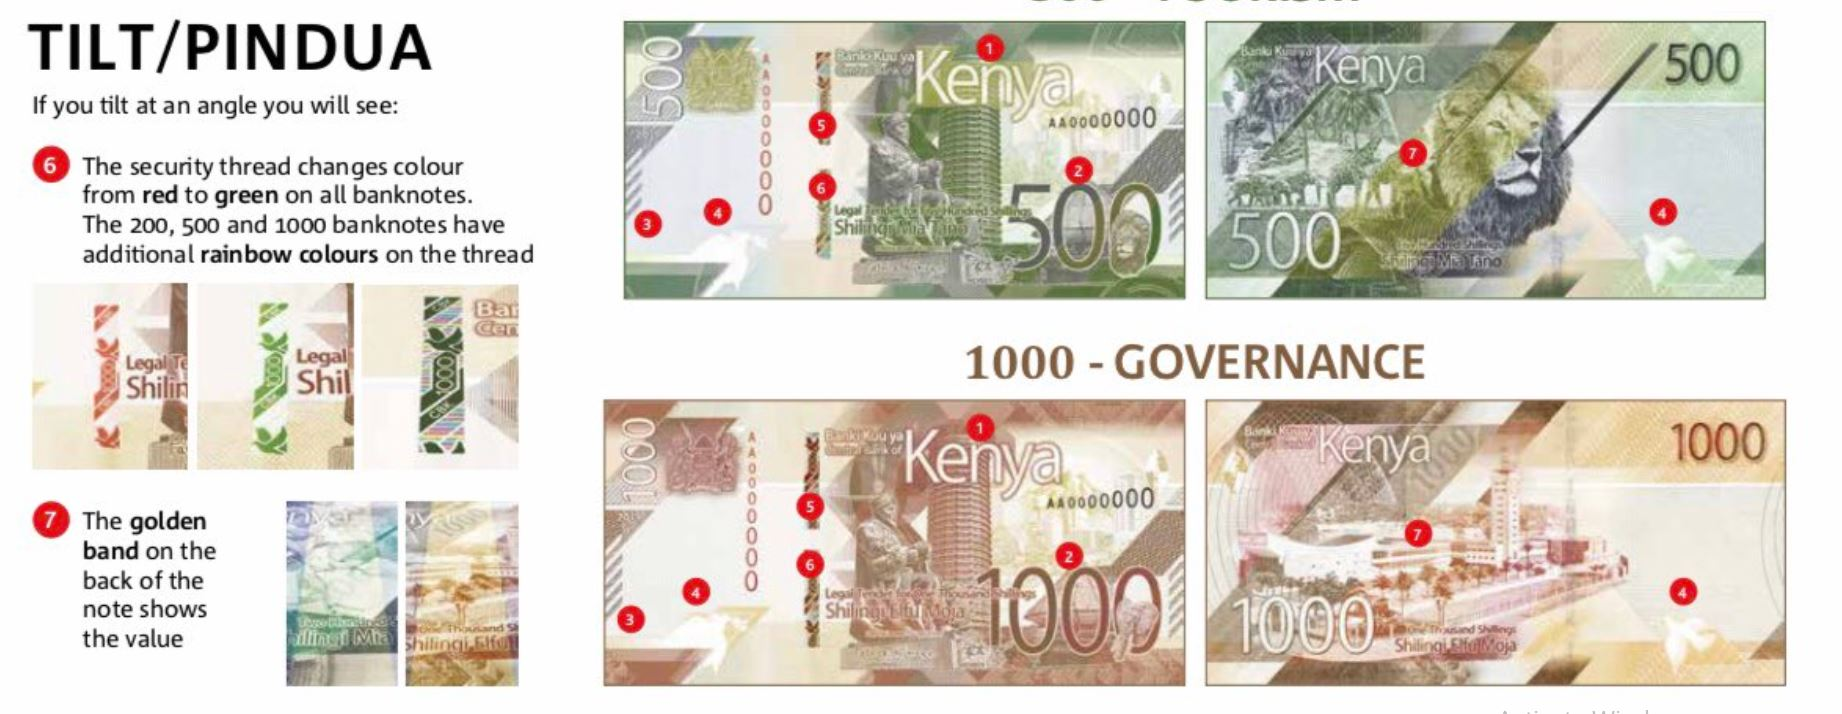 CBK New Generation Kenyan Currency Banks Notes Launched June 2019